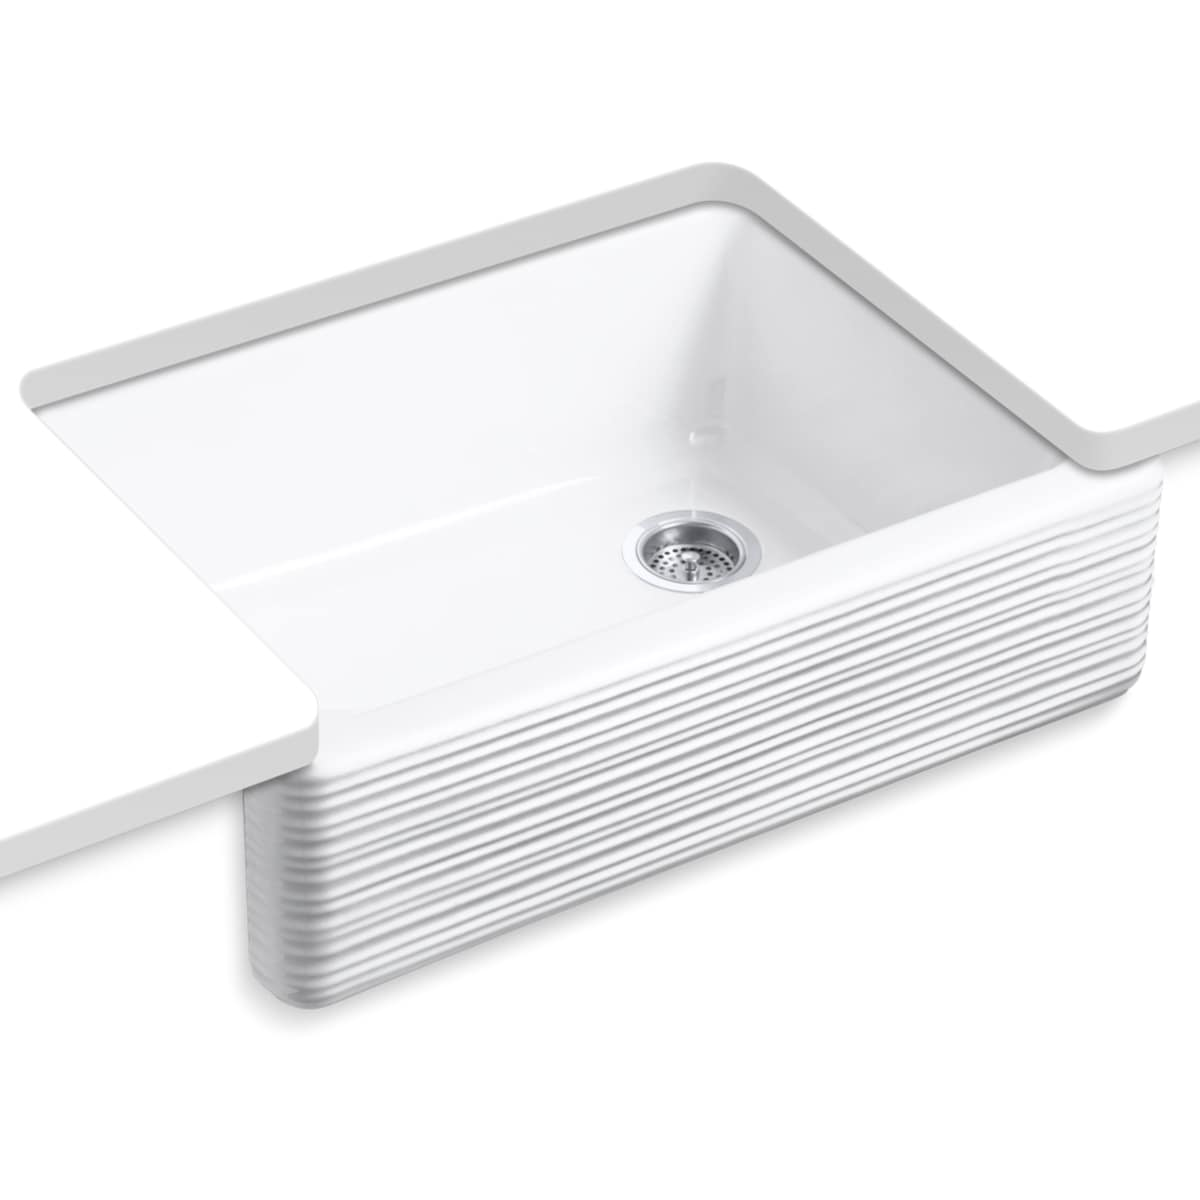 Kohler K 7251 0 White Whitehaven 29 11 16 Single Basin Farmhouse